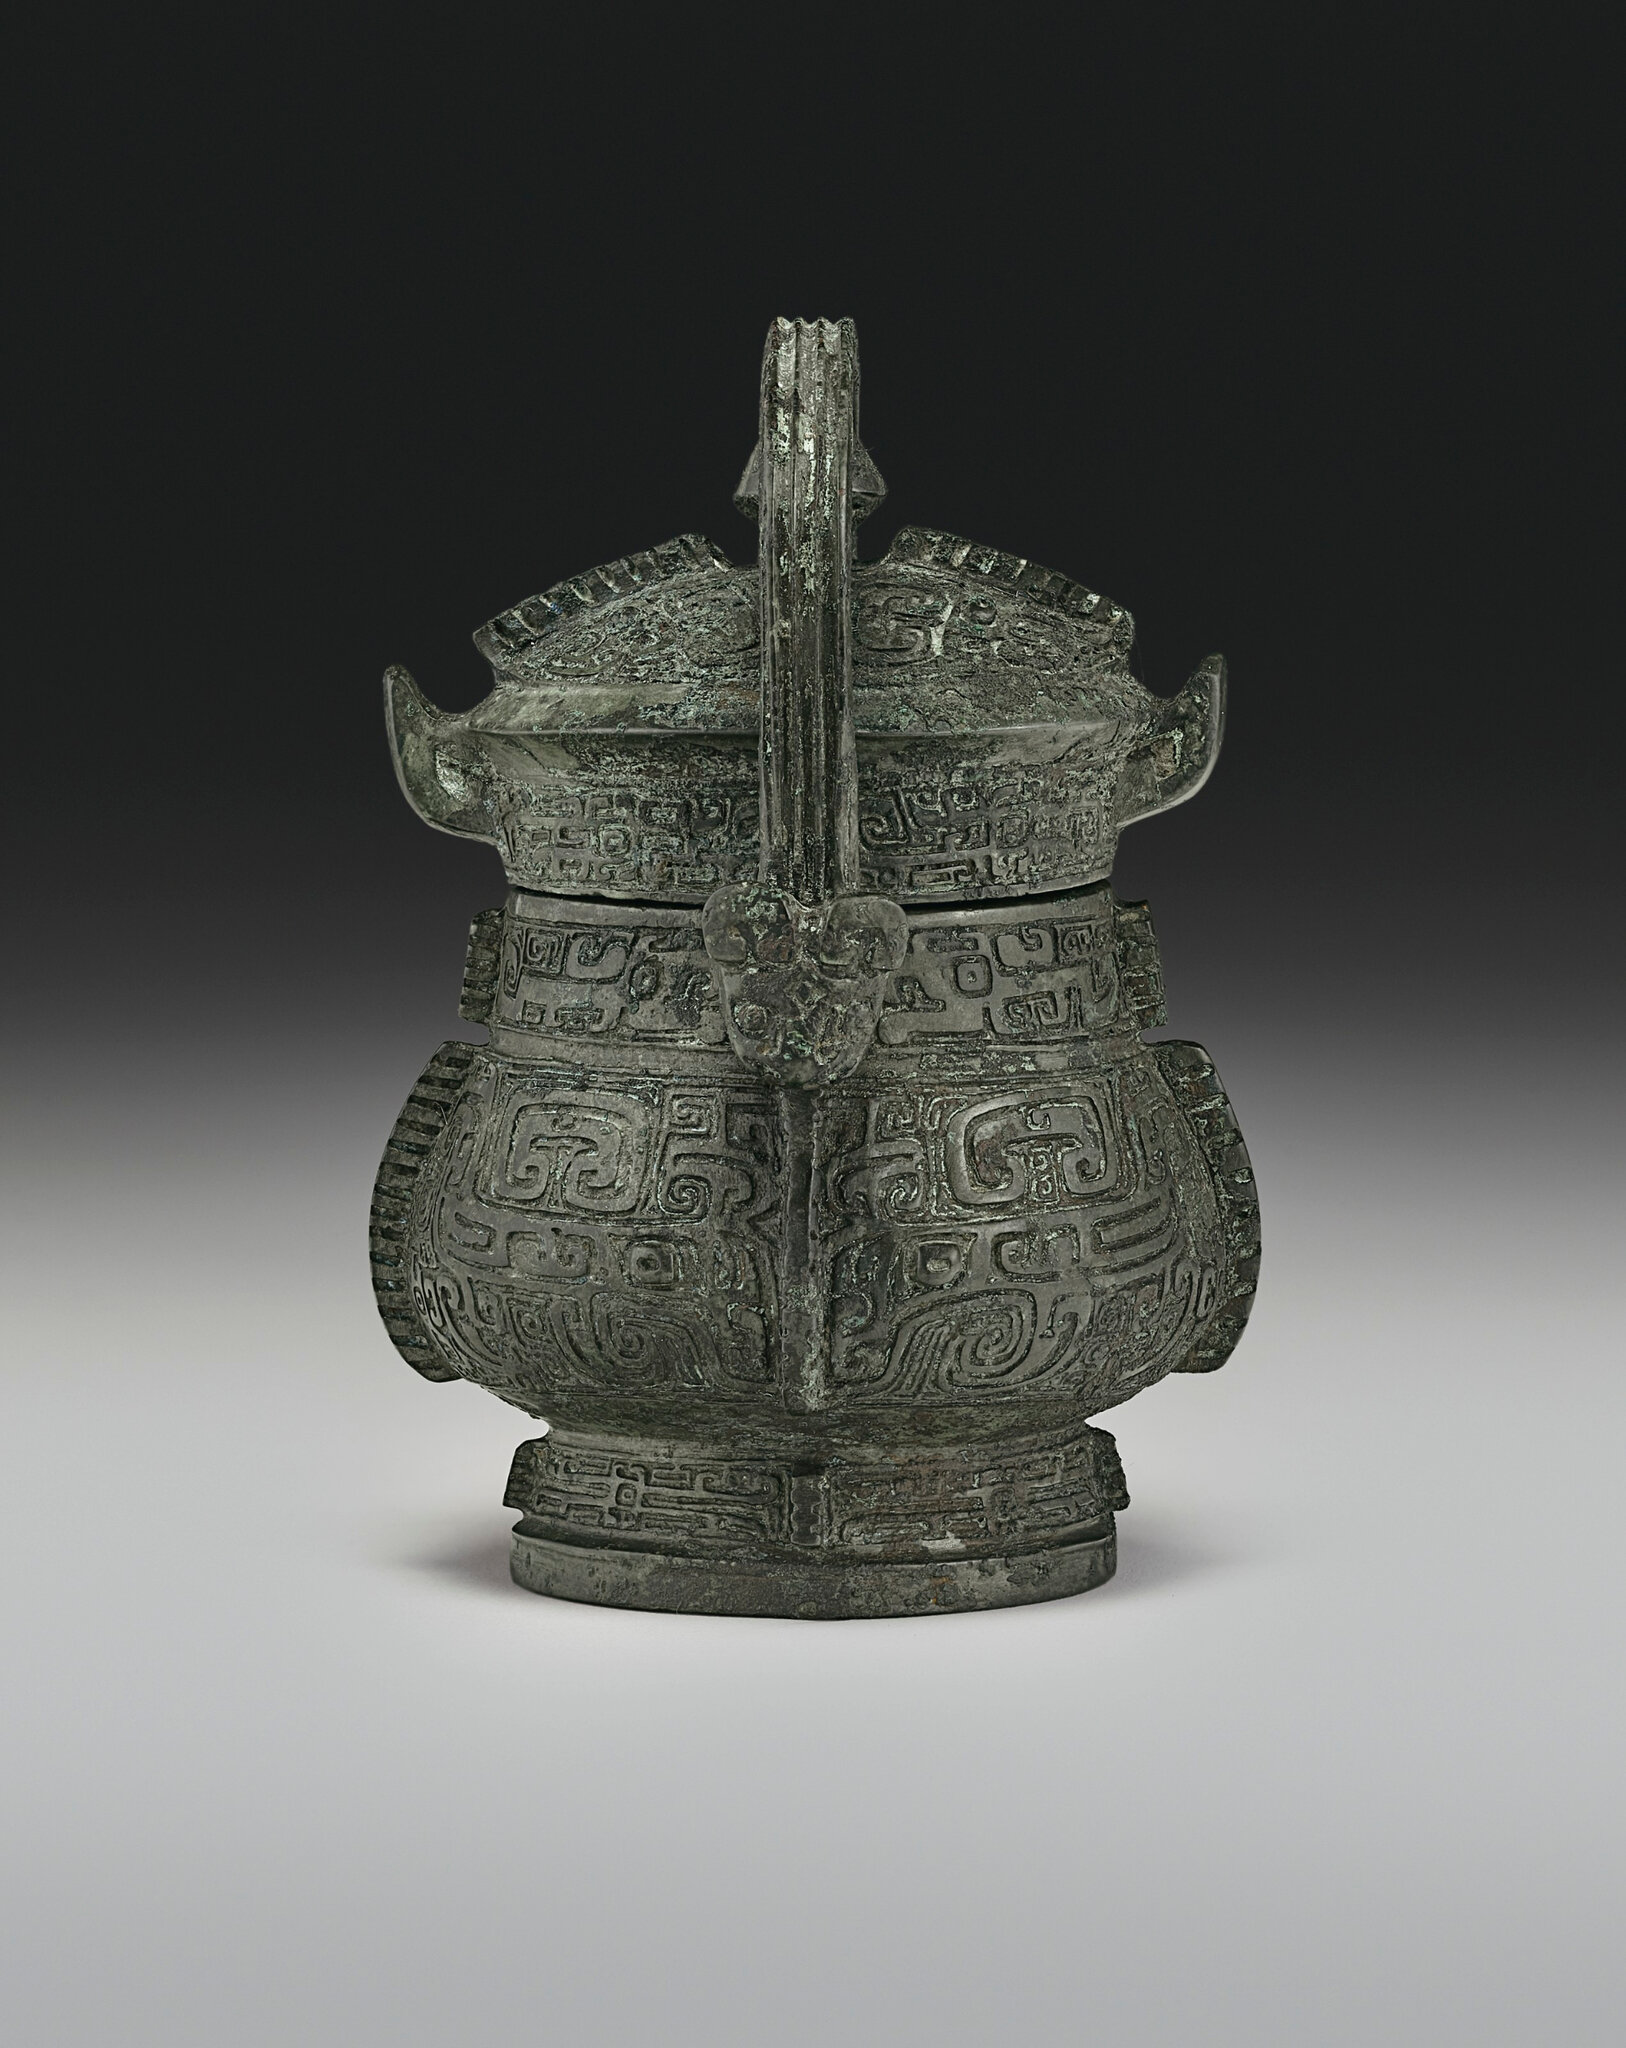 2019_NYR_16950_0806_002(a_very_rare_miniature_bronze_ritual_wine_vessel_and_cover_you_late_sha)